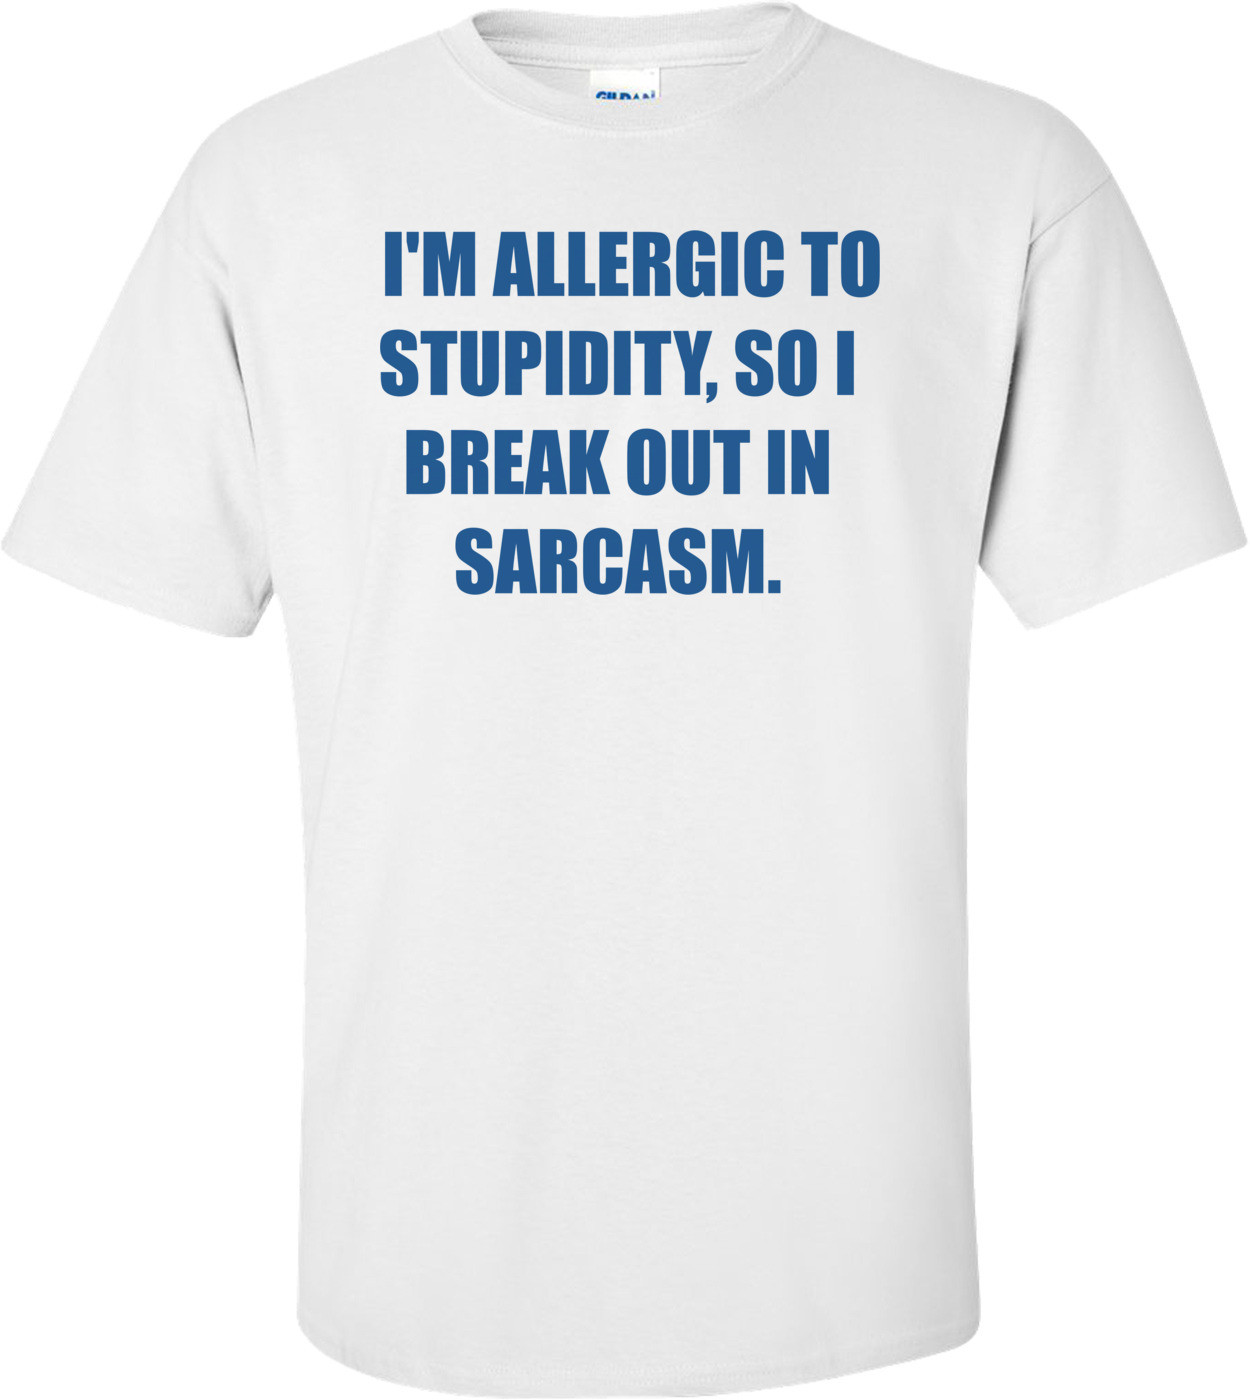 I'M ALLERGIC TO STUPIDITY, SO I BREAK OUT IN SARCASM. Shirt